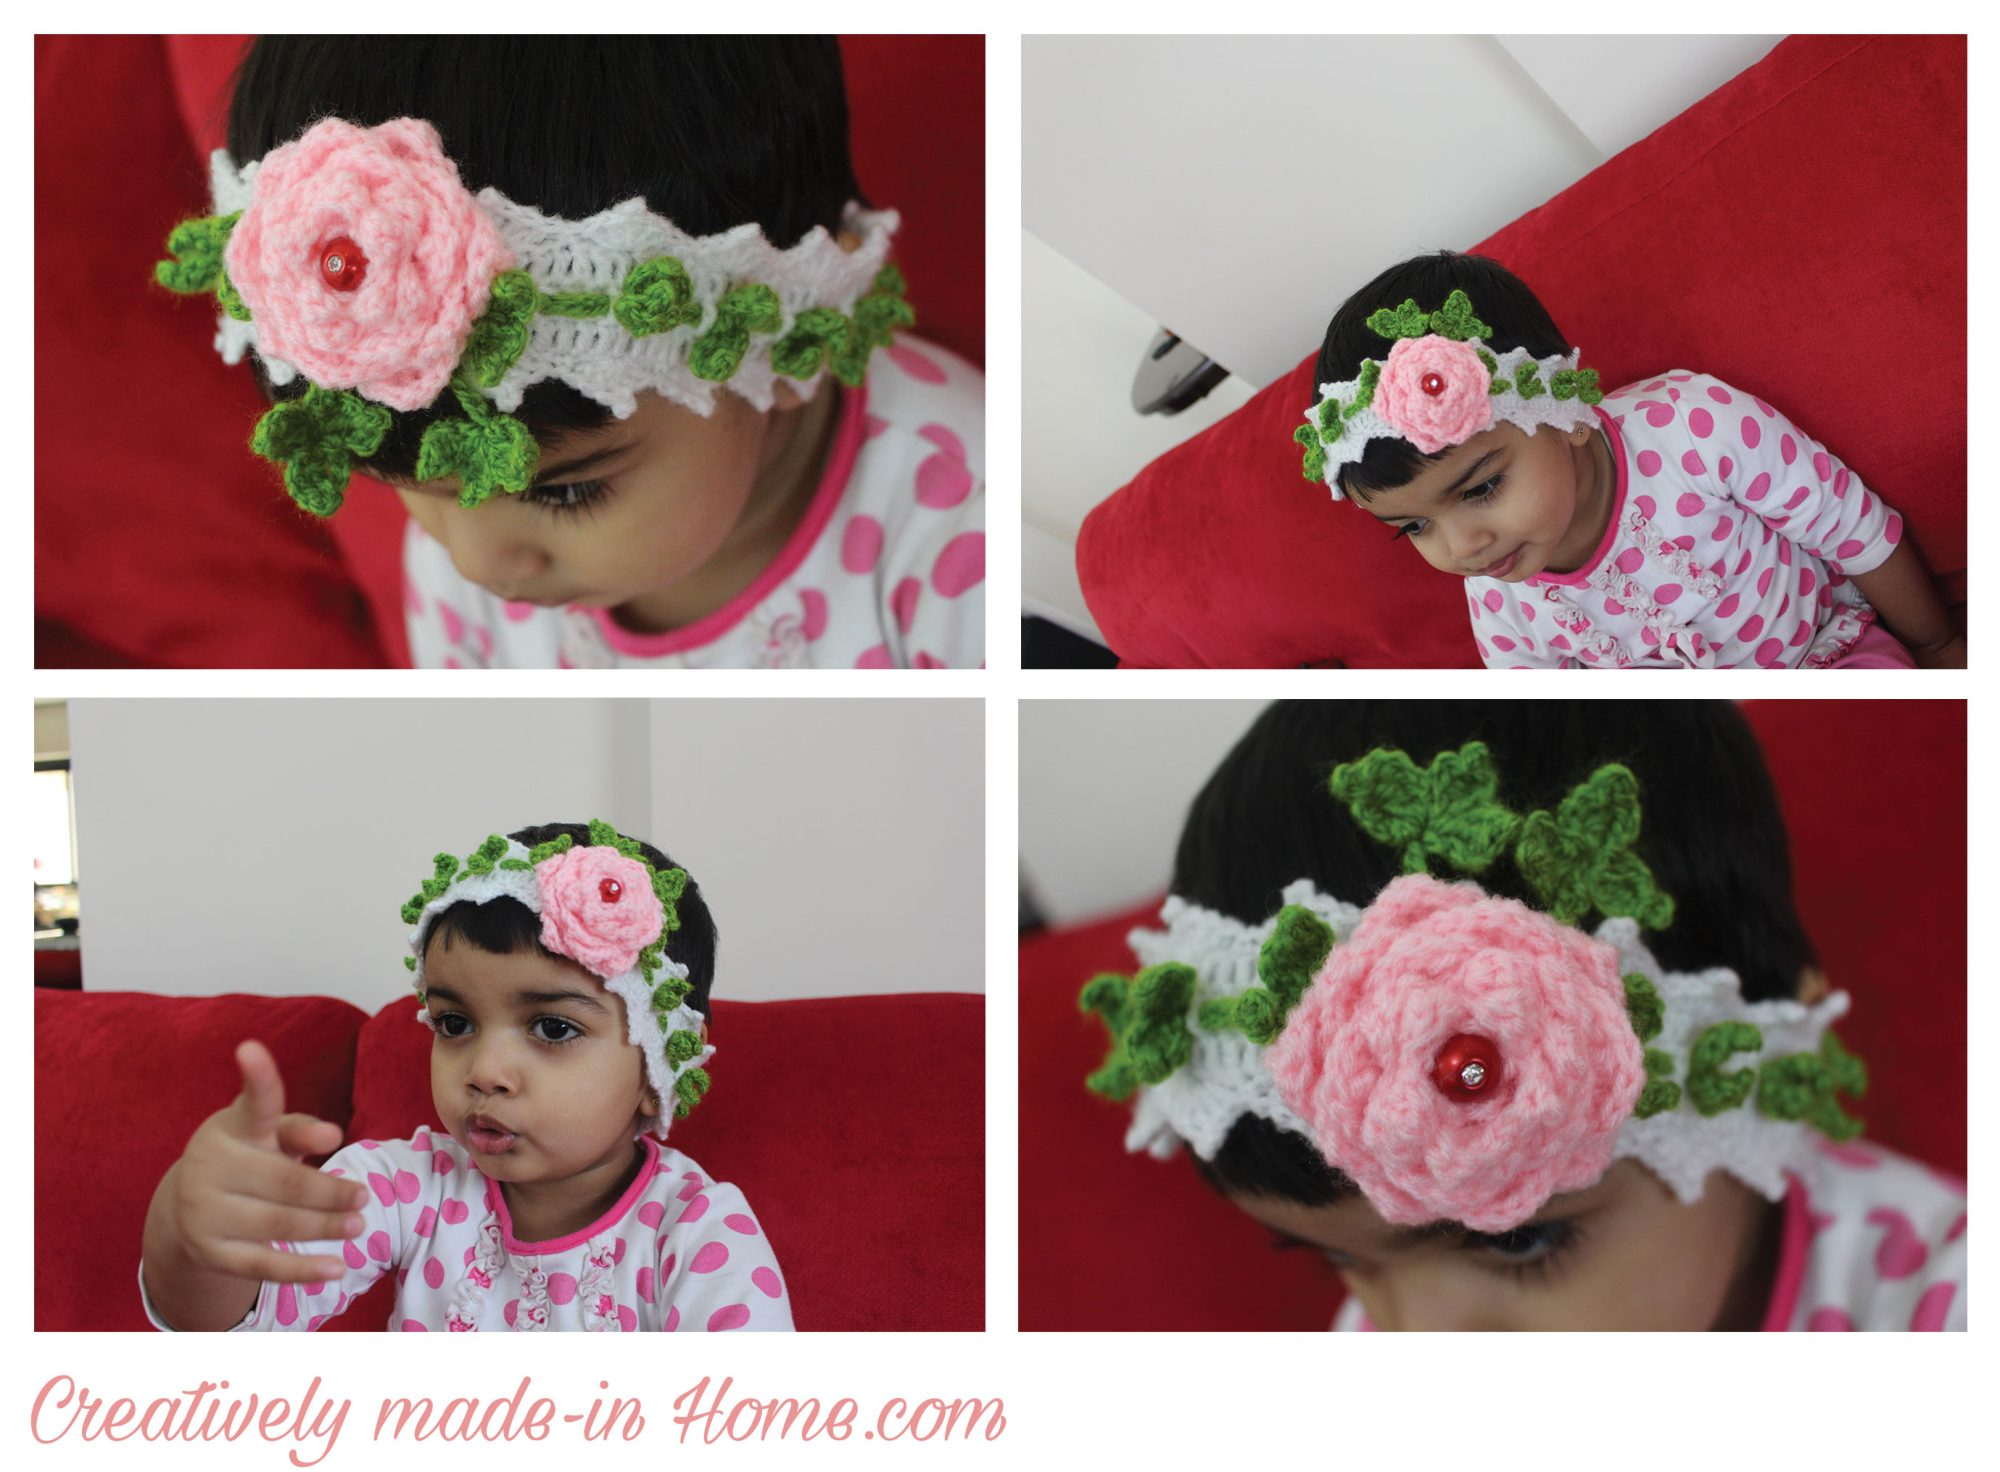 Crochet Floral Headband For Baby Creatively Made In Home How To Make